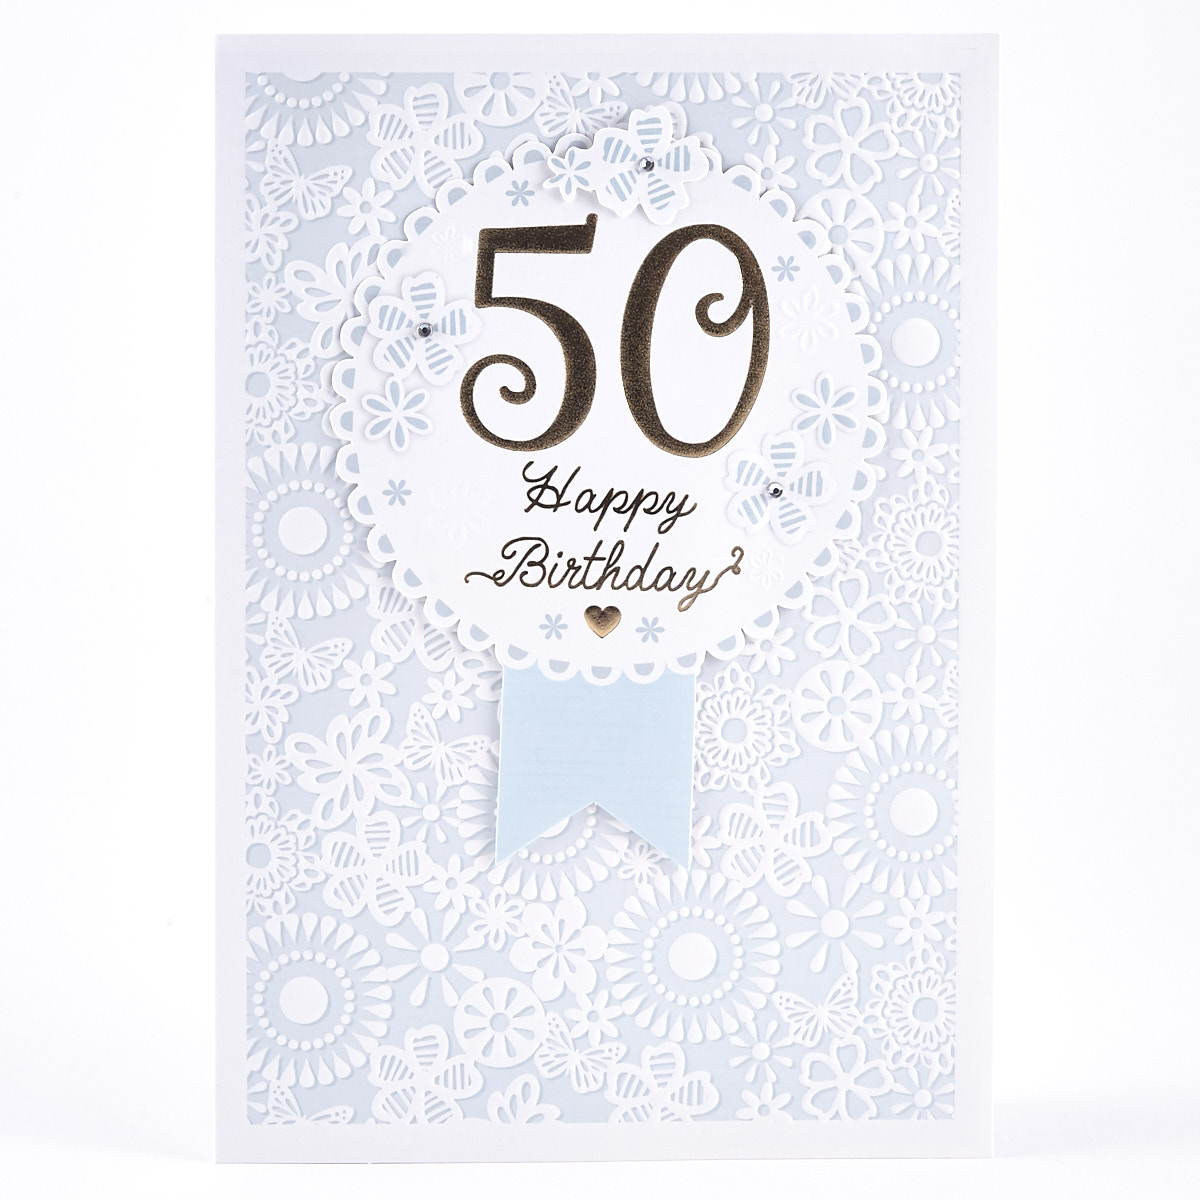 50th Birthday Card - Blue Floral Pattern